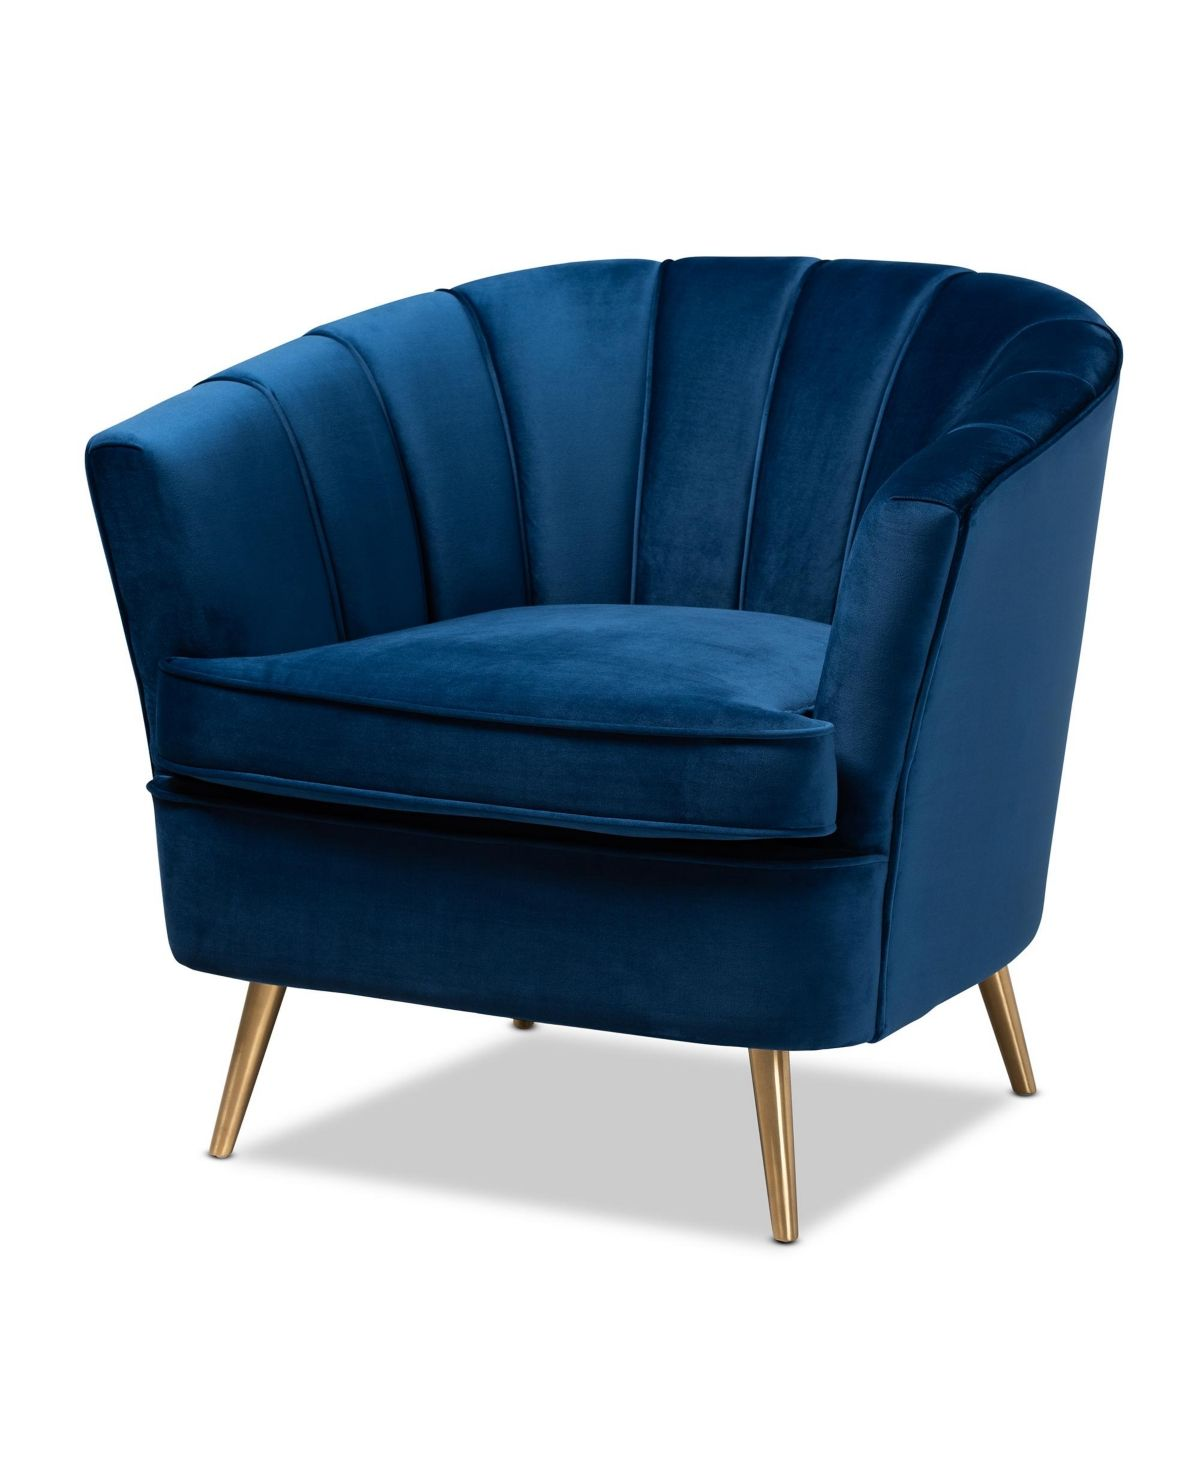 Best Furniture Emeline Accent Chair Reviews Chairs 400 x 300